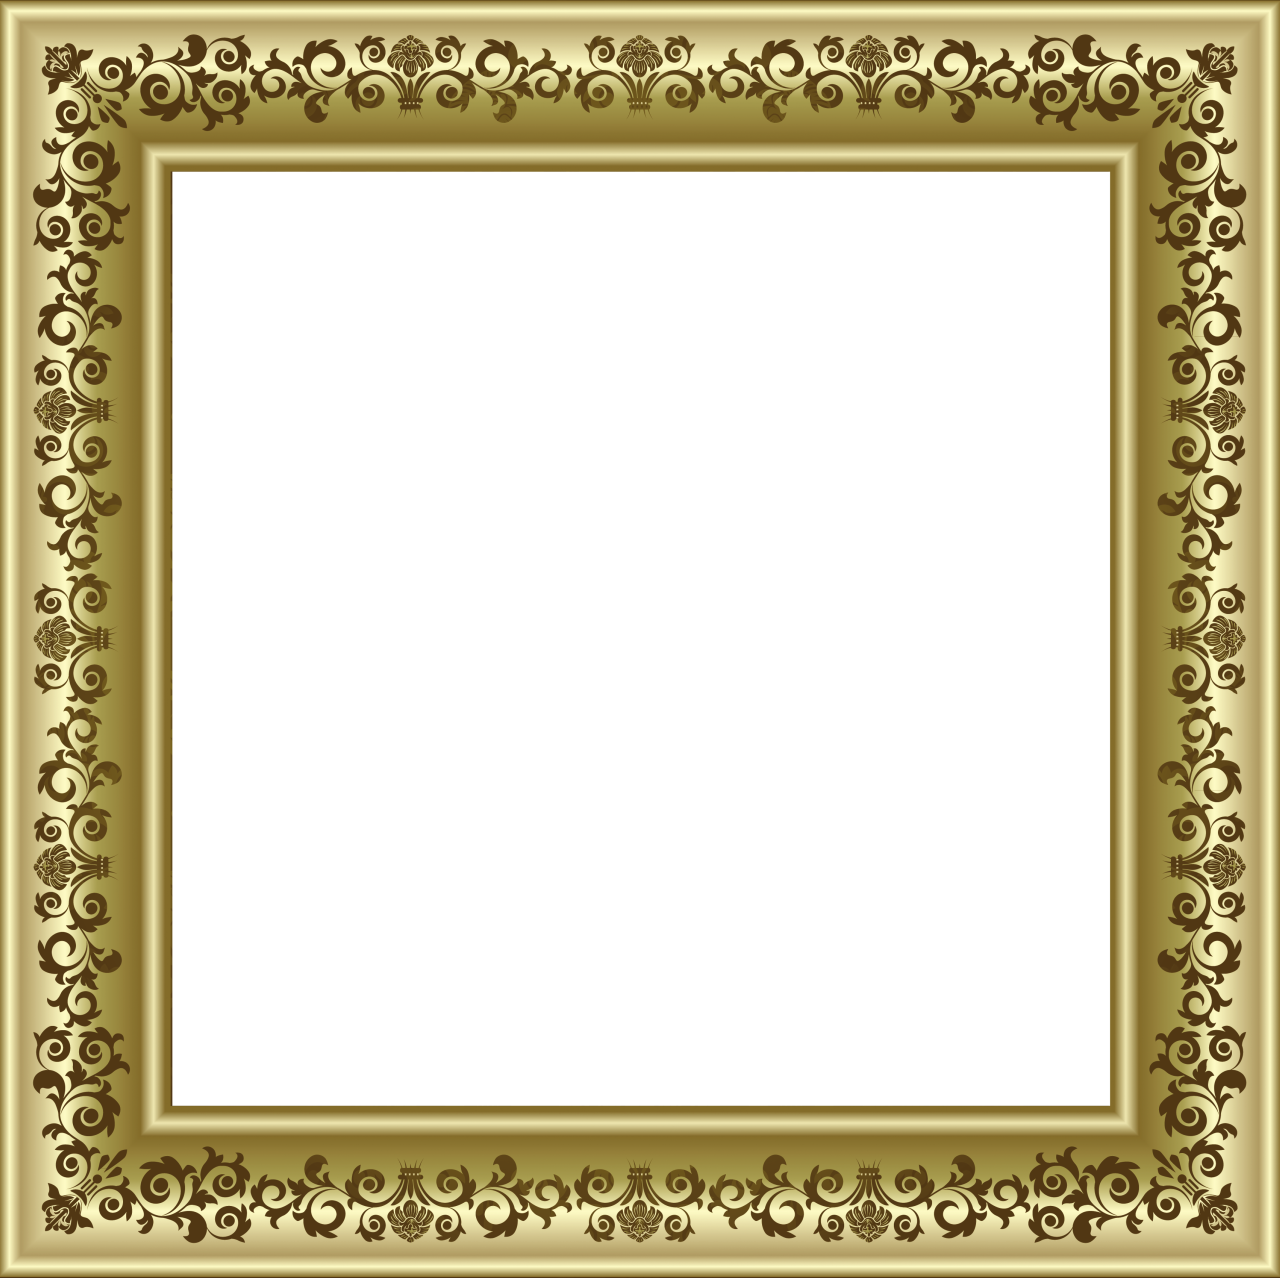 Png photo frames. Gold frame with brown